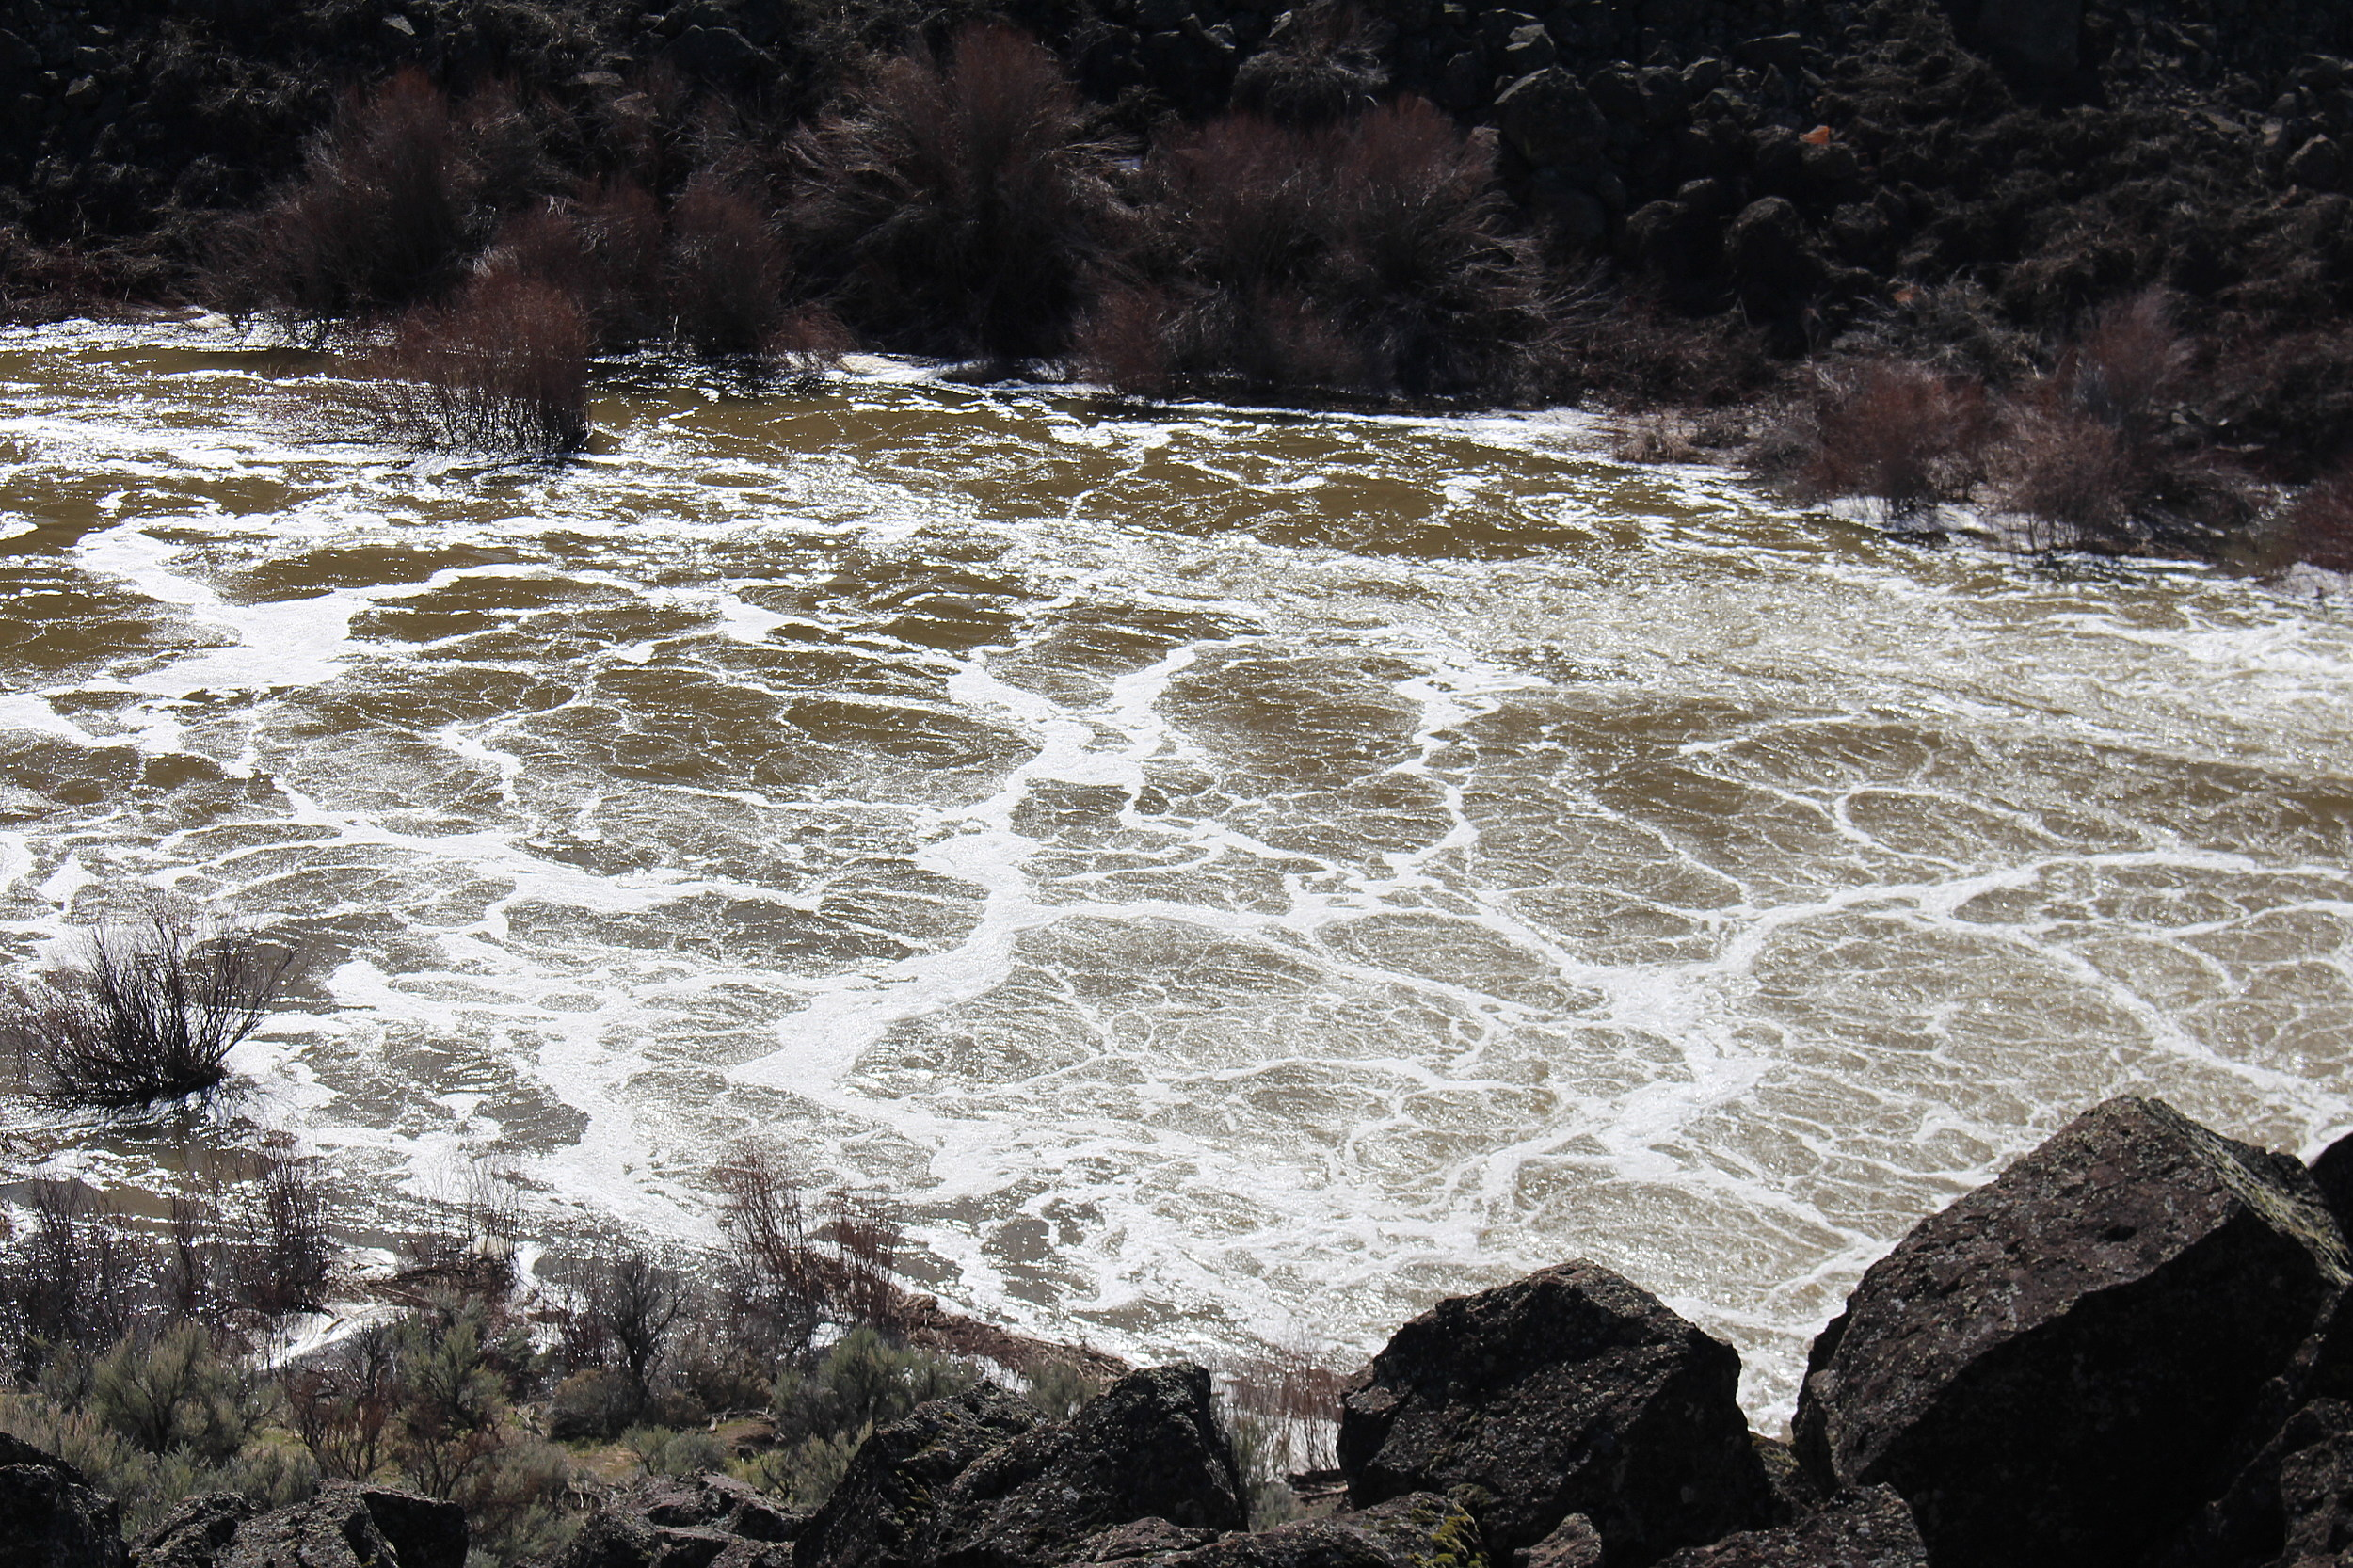 Water from the spillway at Magic Reservoir as seen in late March. (Photo by Benito Baeza)